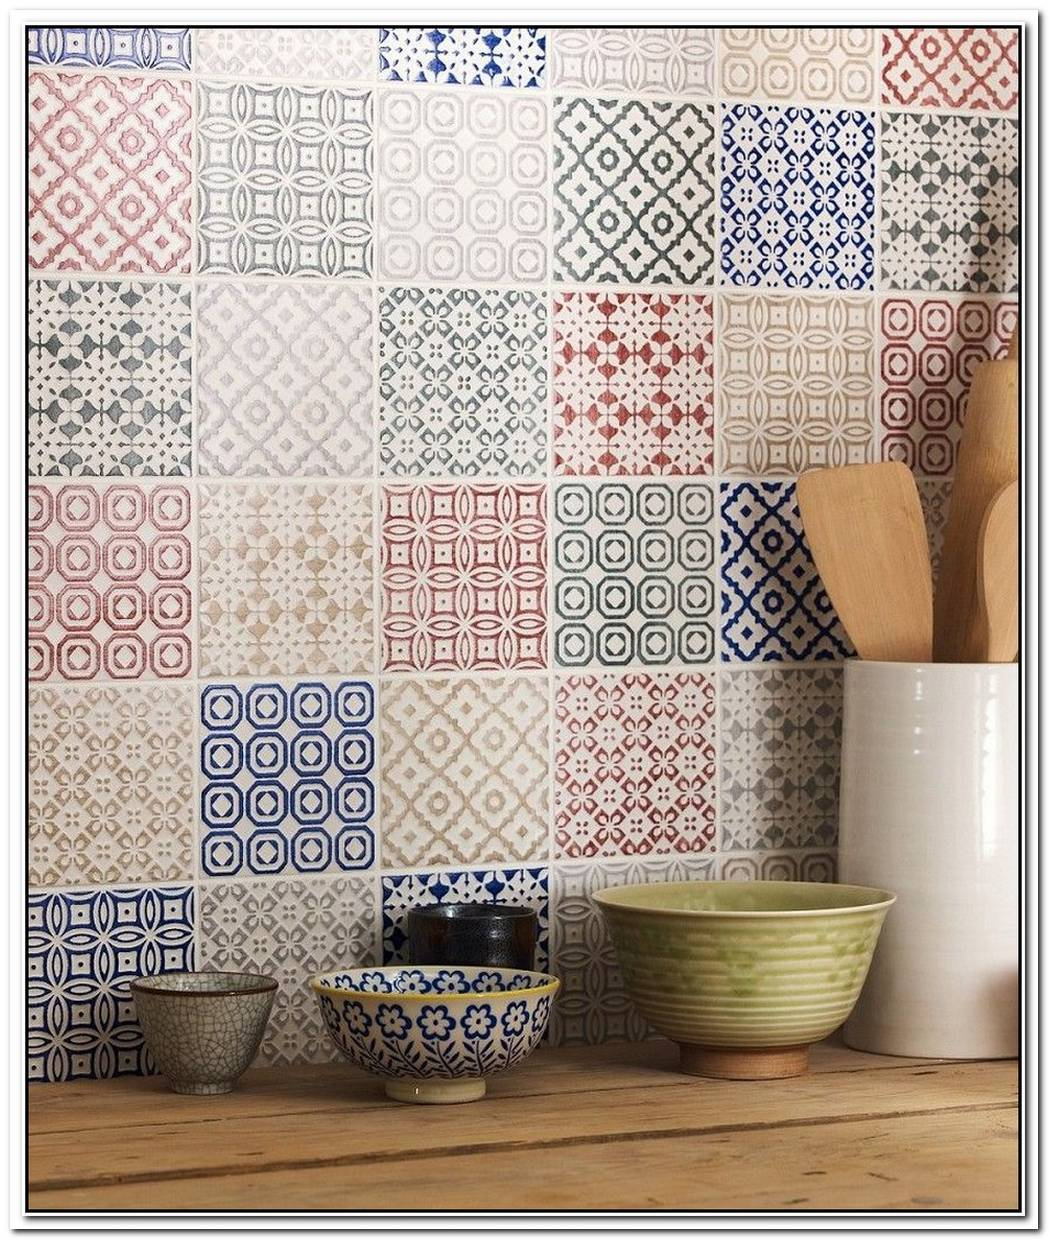 Mix And Match Patterned Tiles For A Unique Décor